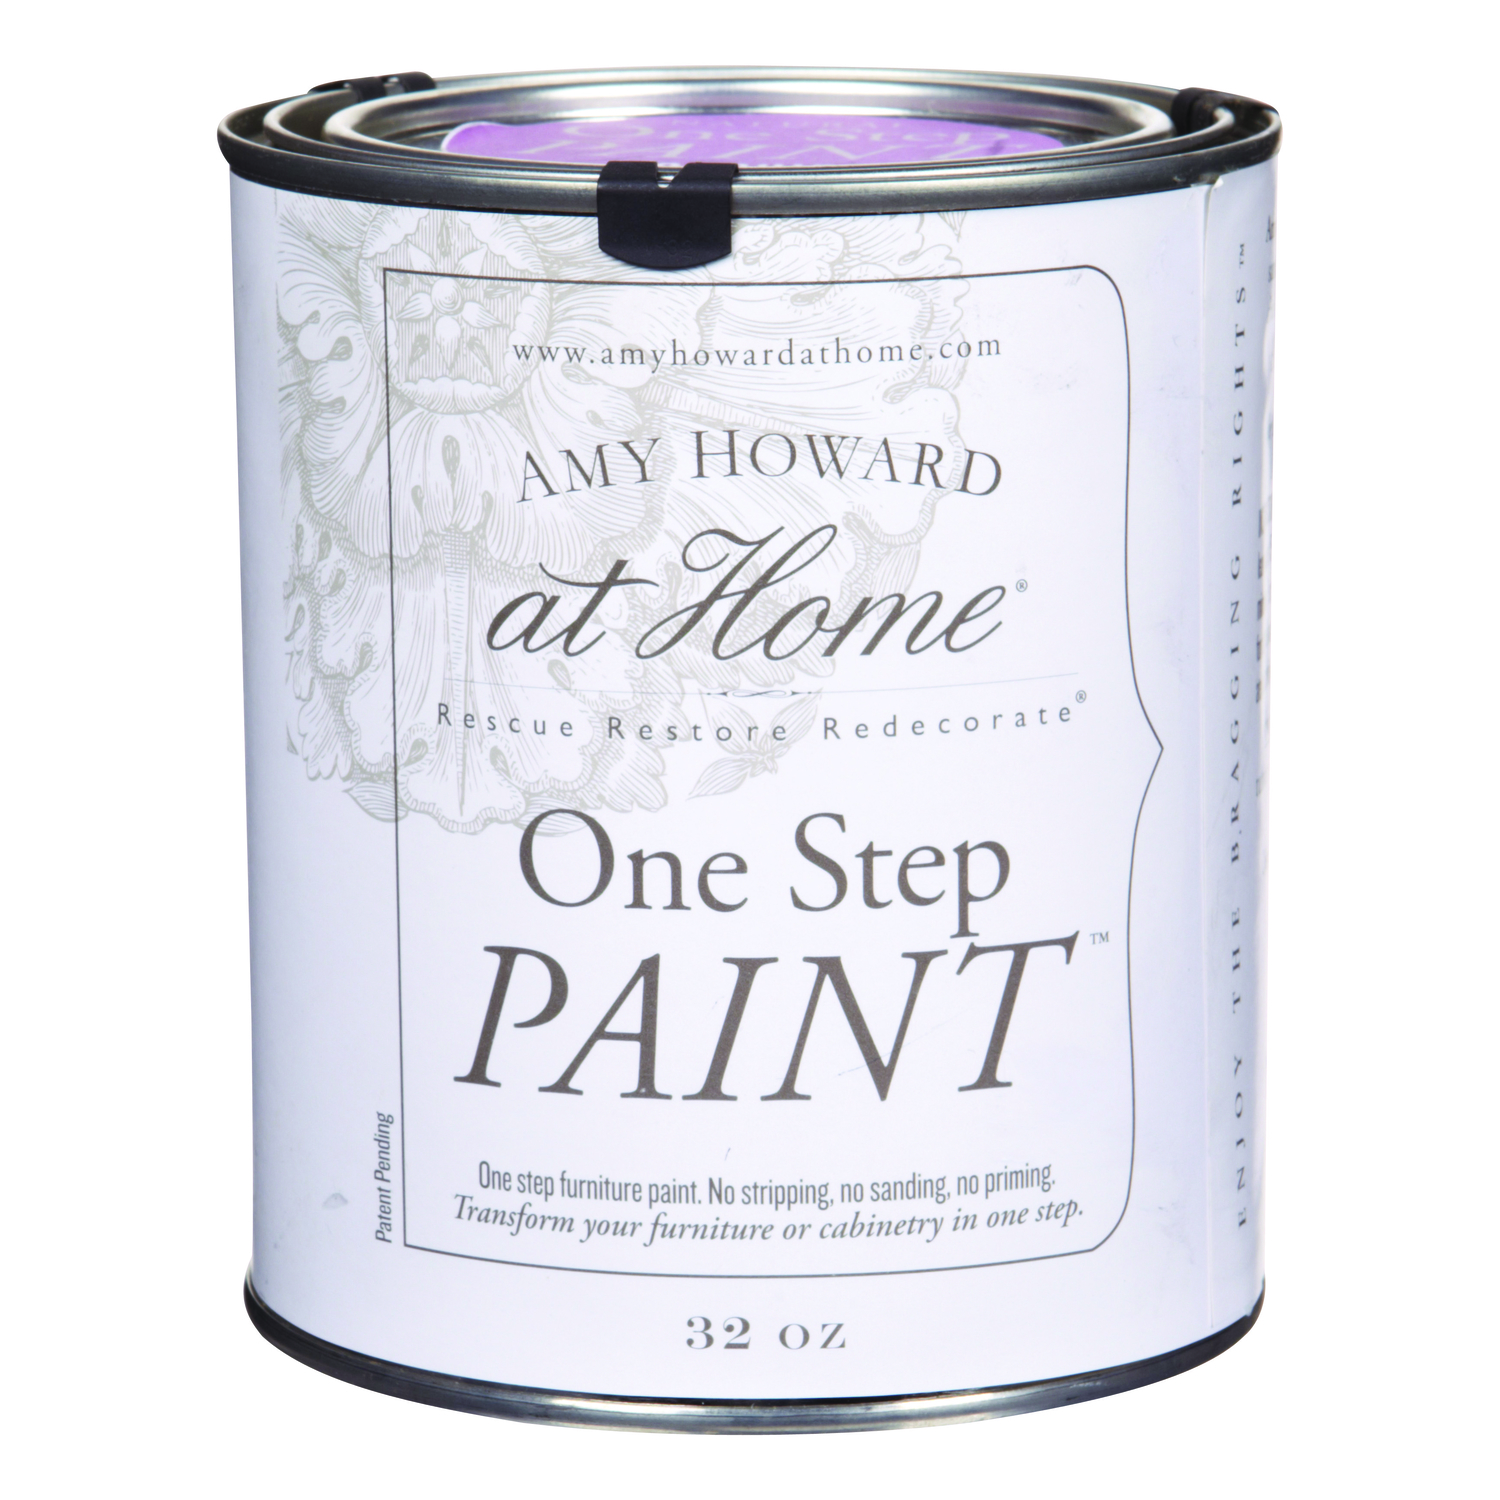 Amy Howard at Home  Orchid  Latex  One Step Paint  Flat Chalky Finish  32 oz.